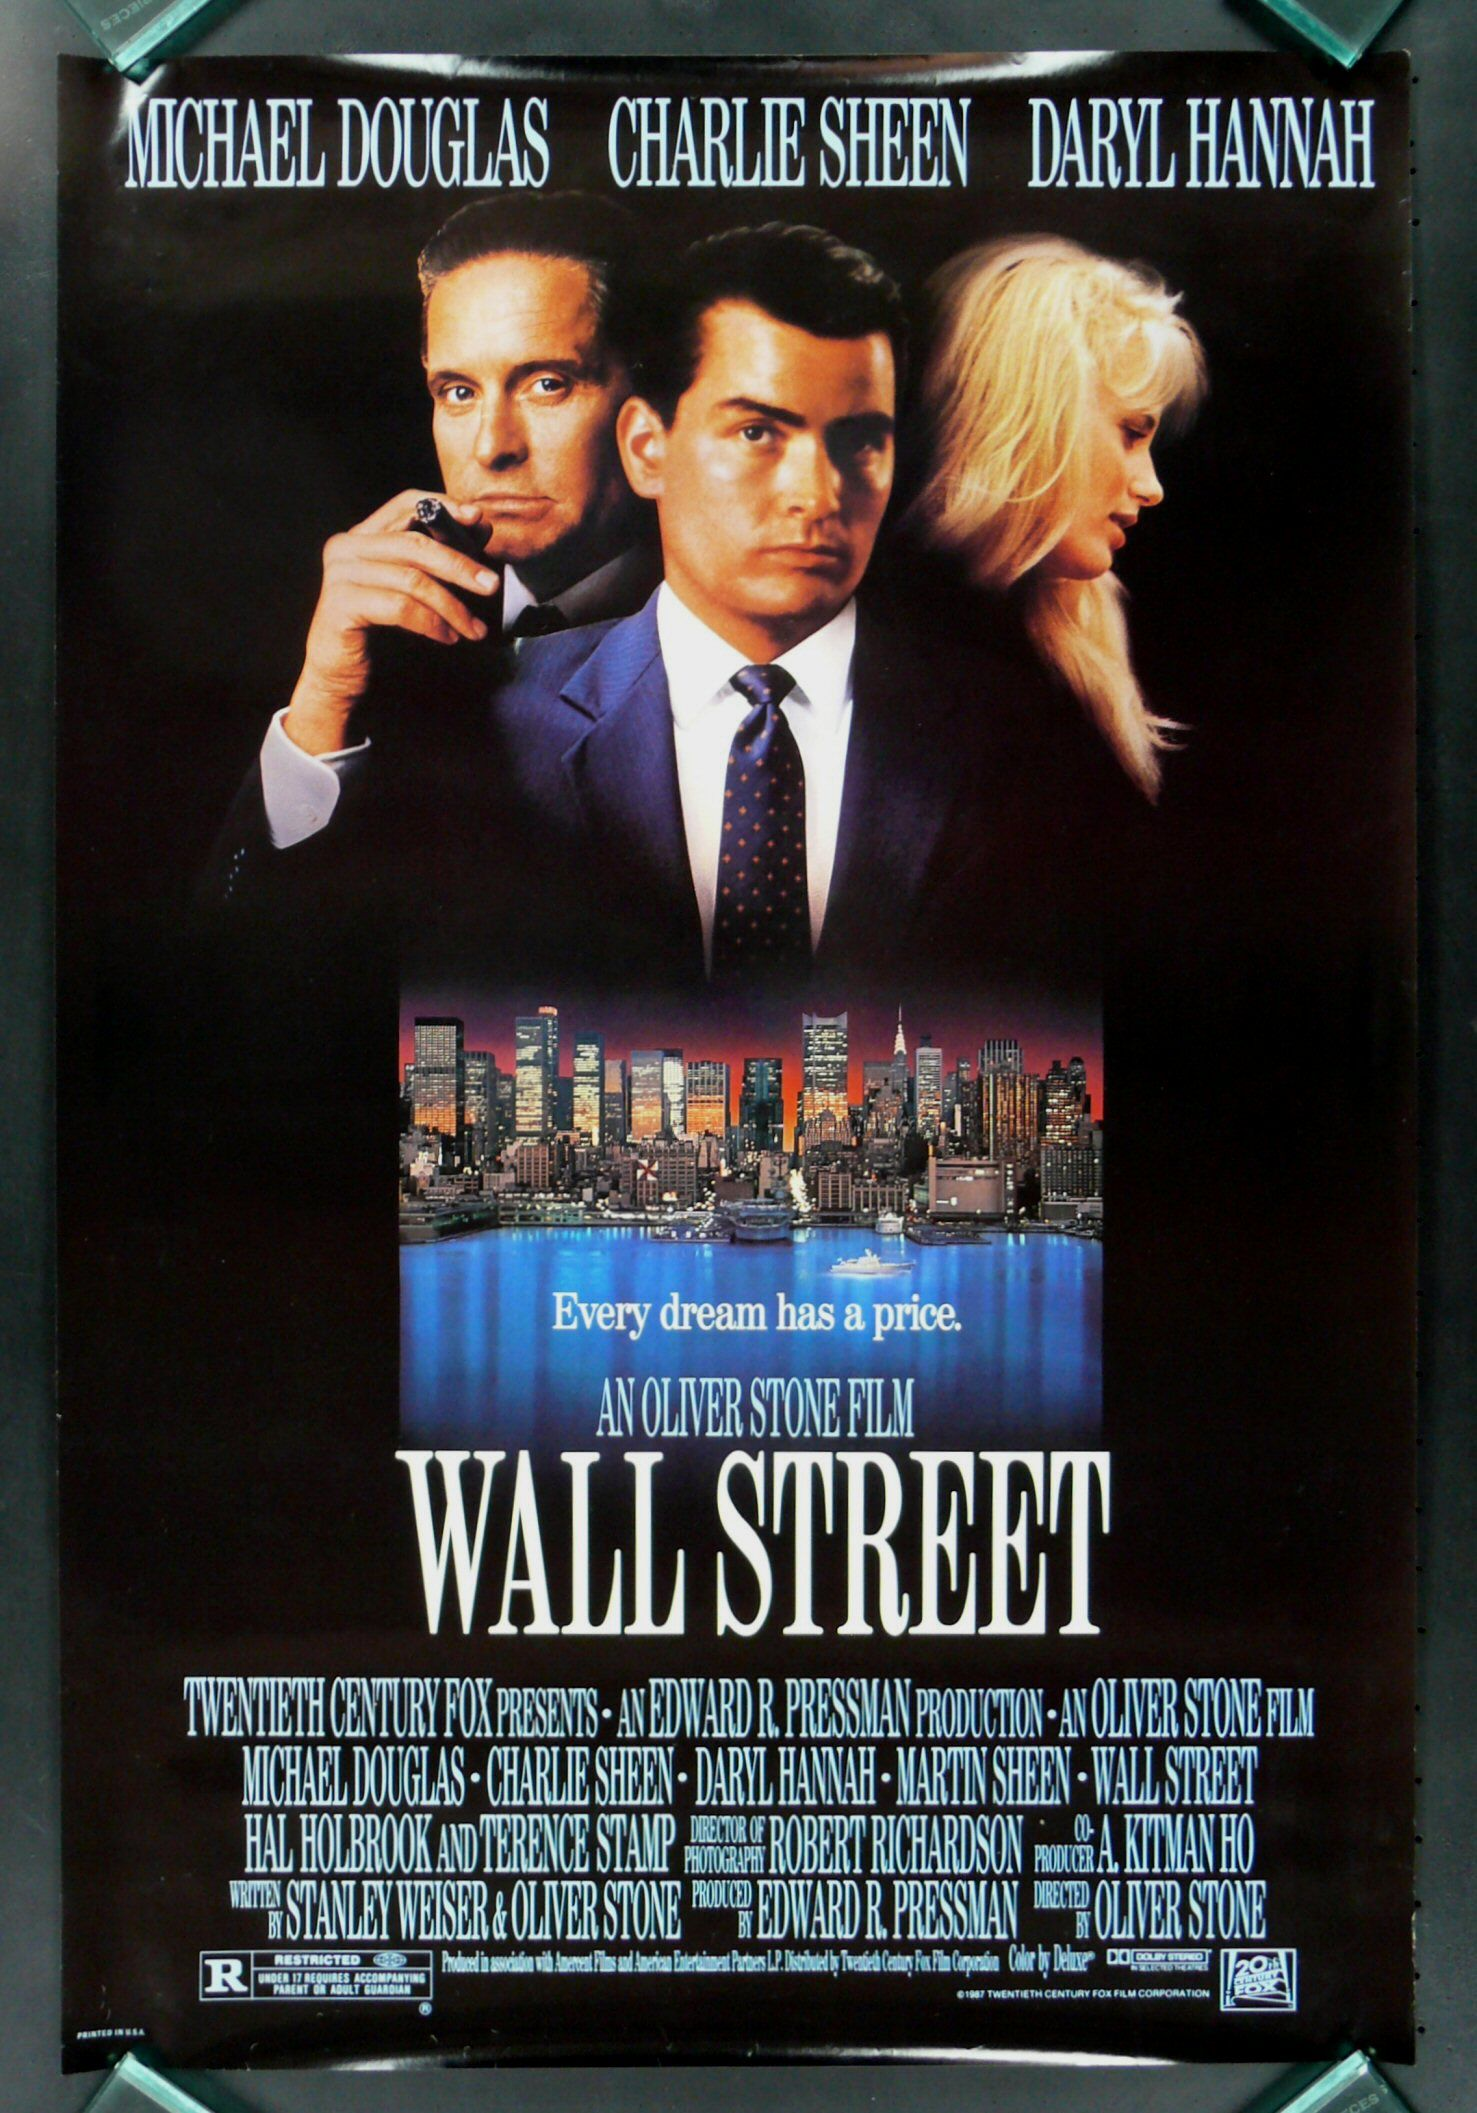 1987 film. A young and impatient stockbroker is willing to